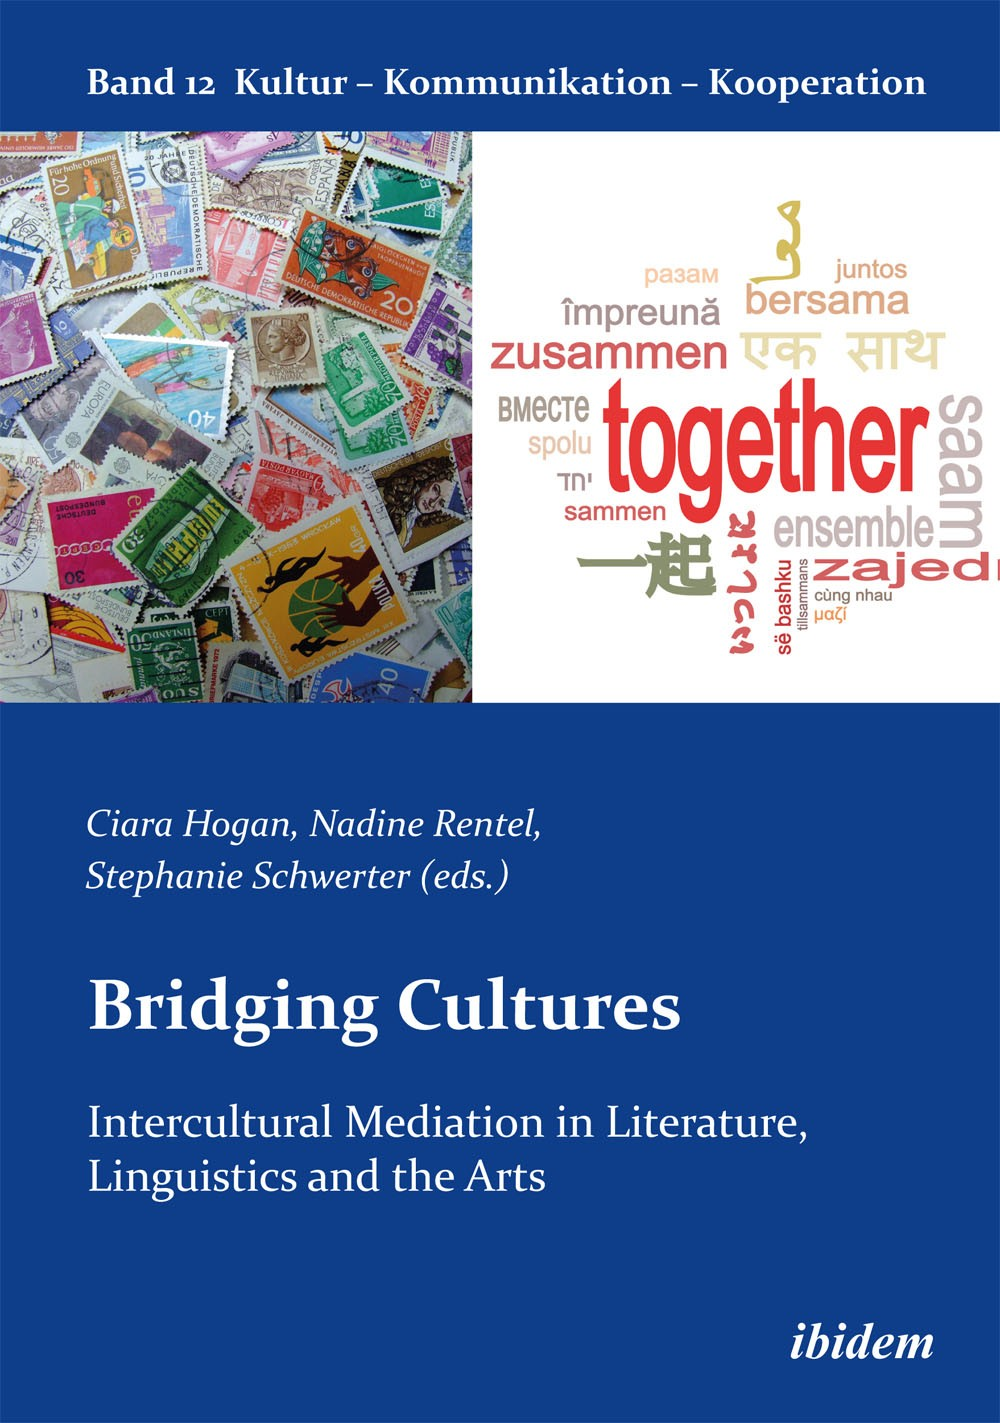 Bridging Cultures: Intercultural Mediation in Literature, Linguistics and the Arts